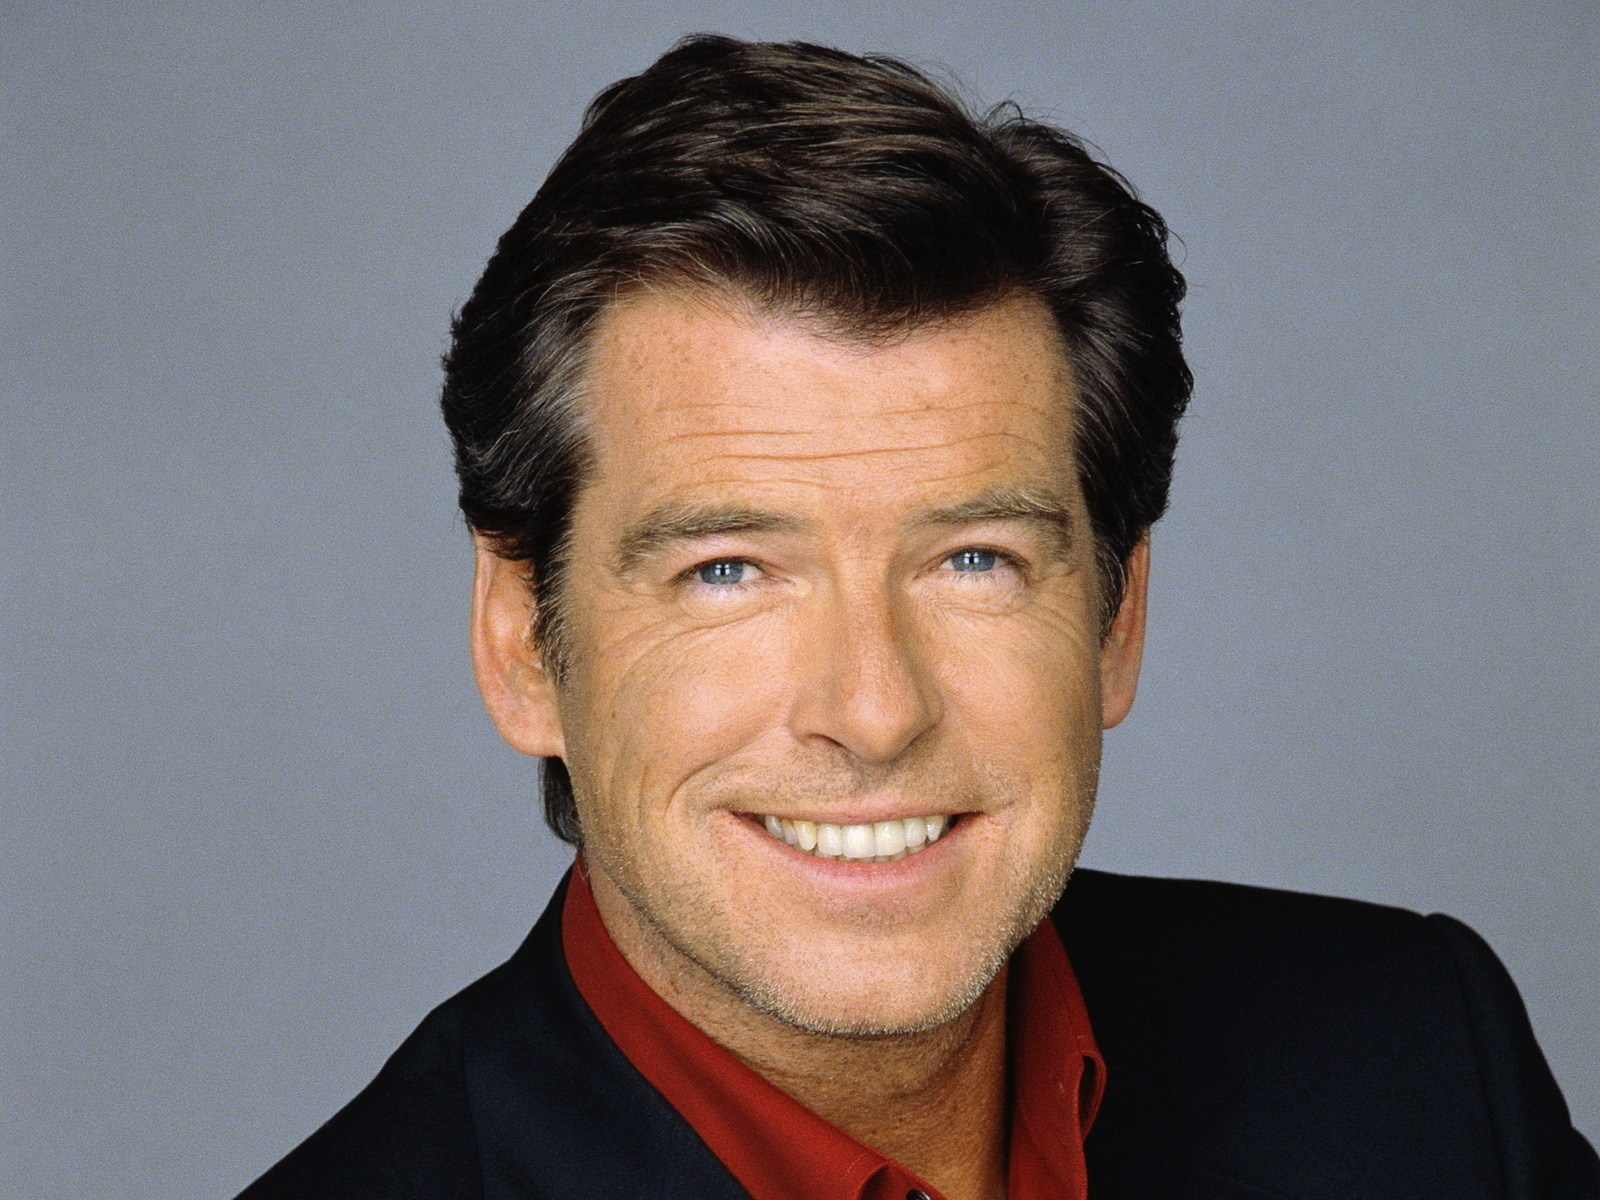 pierce brosnan | BondF...